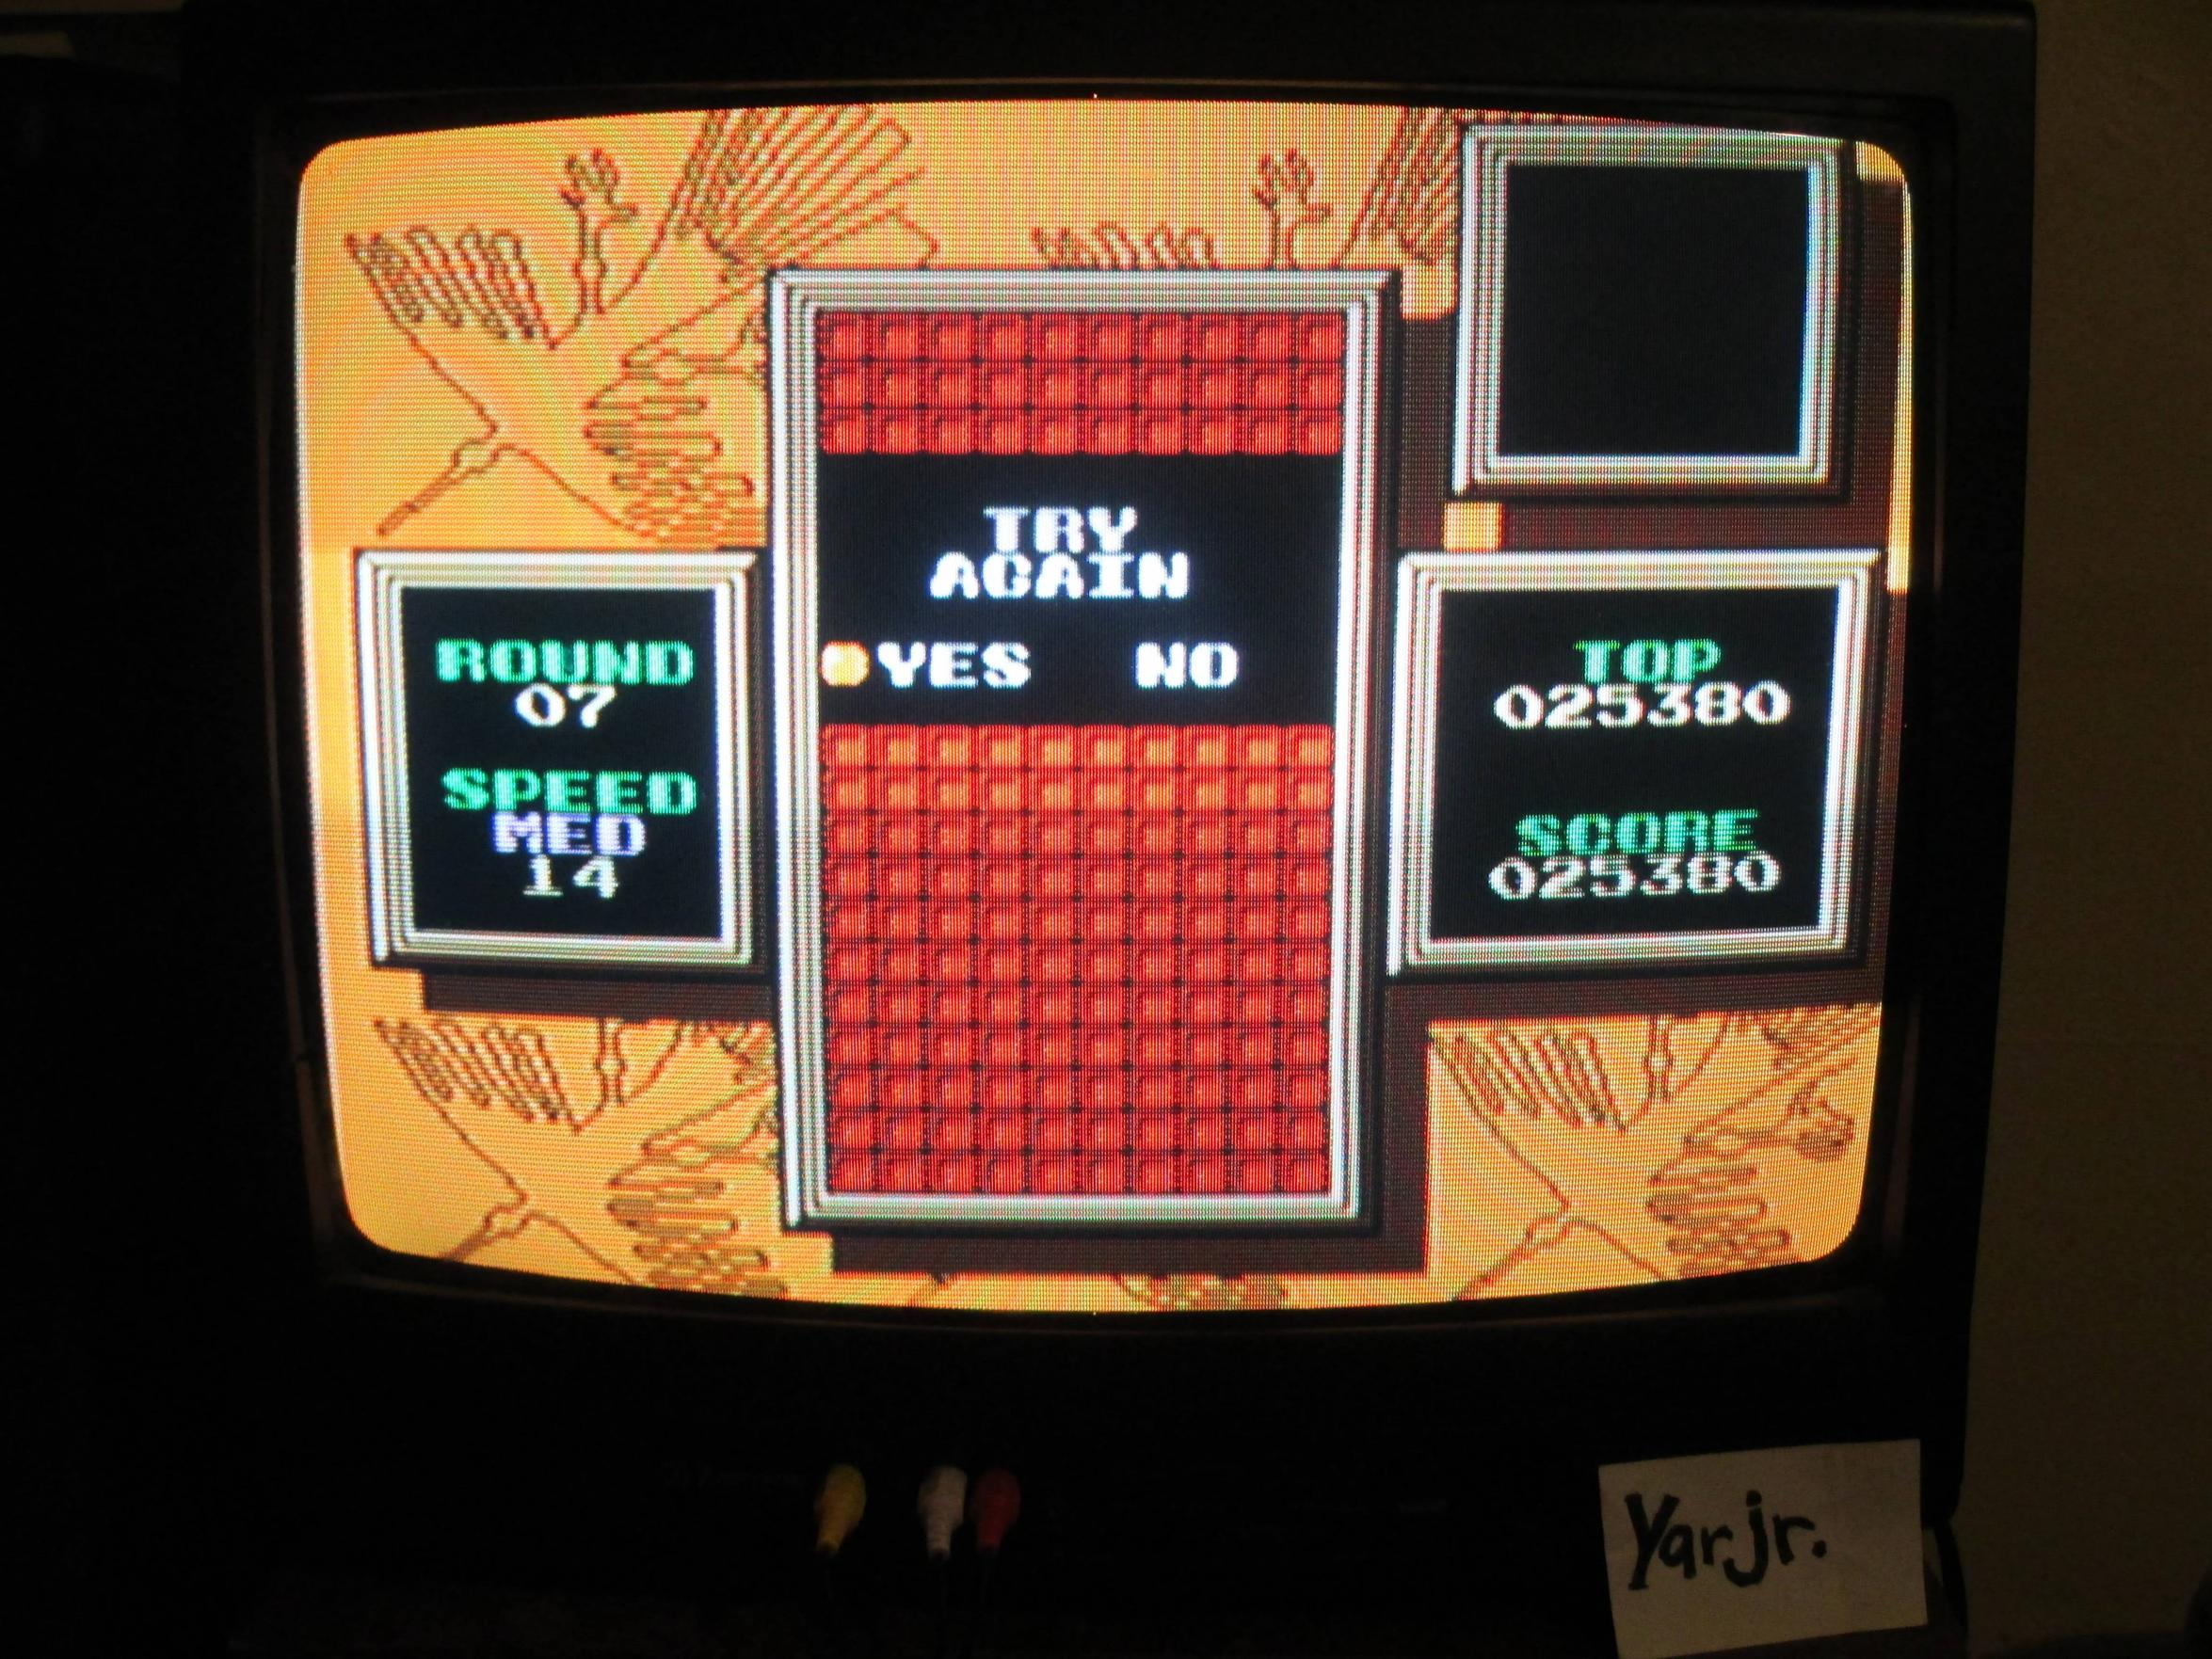 yarjr: Tetris 2 (NES/Famicom Emulated) 25,380 points on 2013-09-11 11:59:05